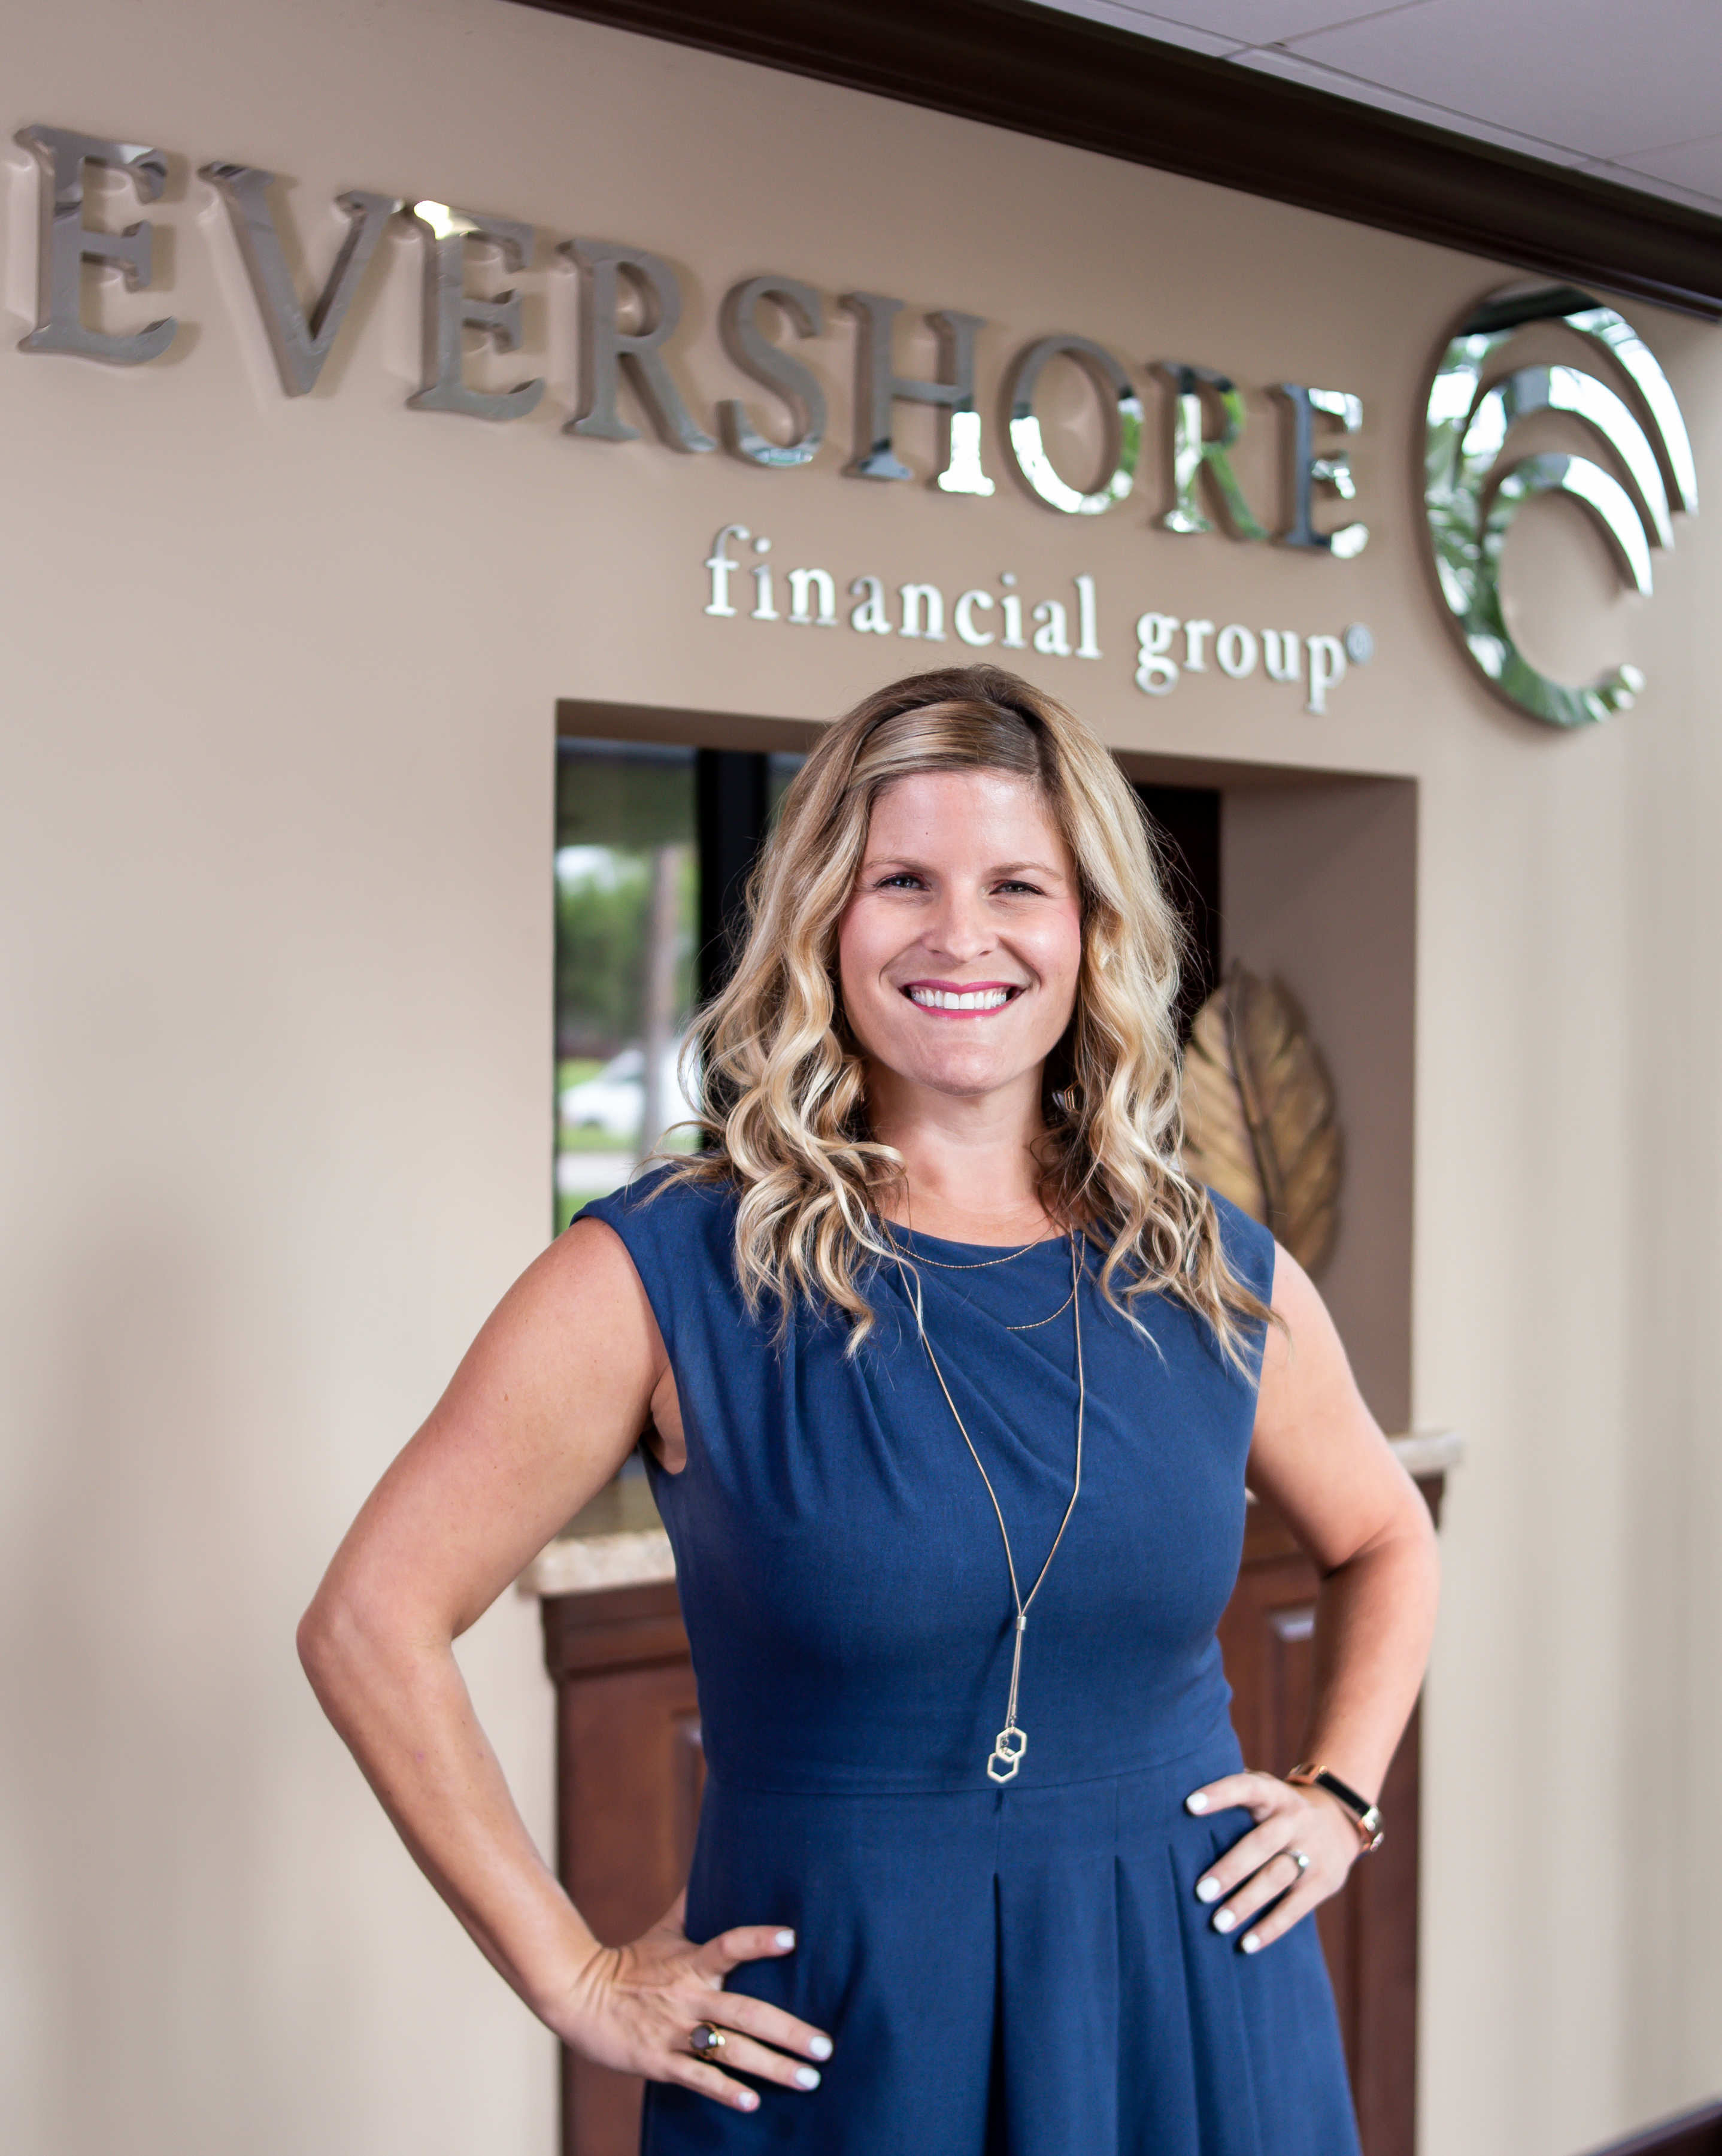 monique-heinz-evershore-financial-group-